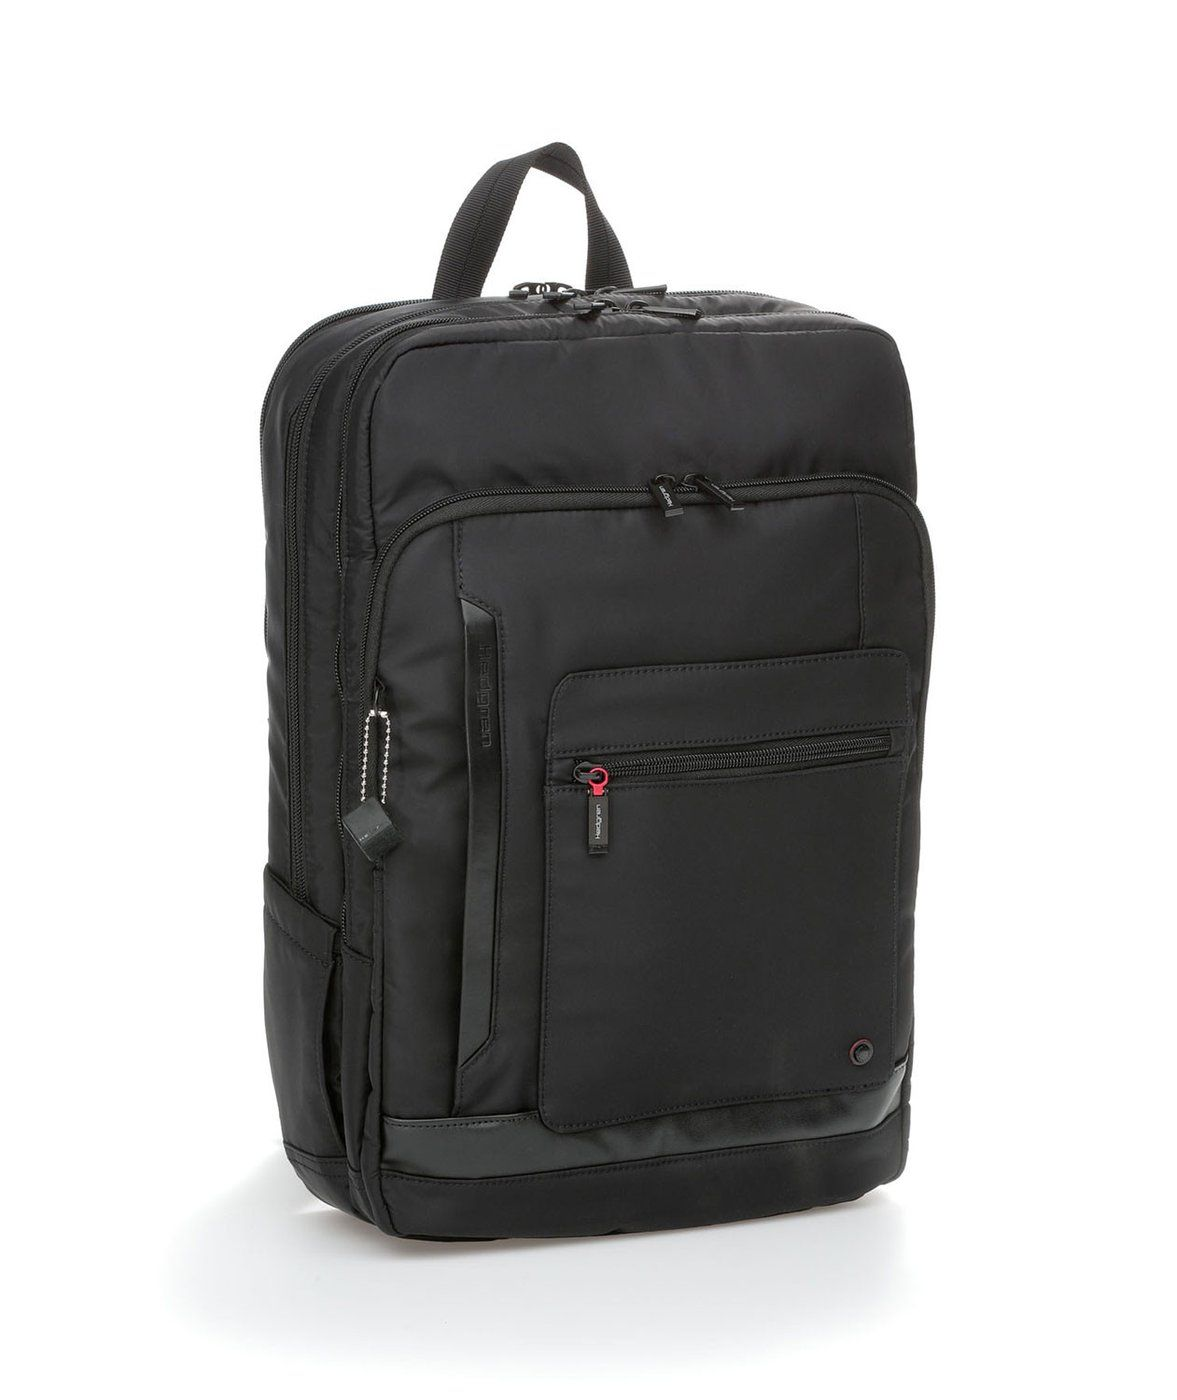 Рюкзак Hedgren HZPR18 Zeppelin Revised Backpack Expel